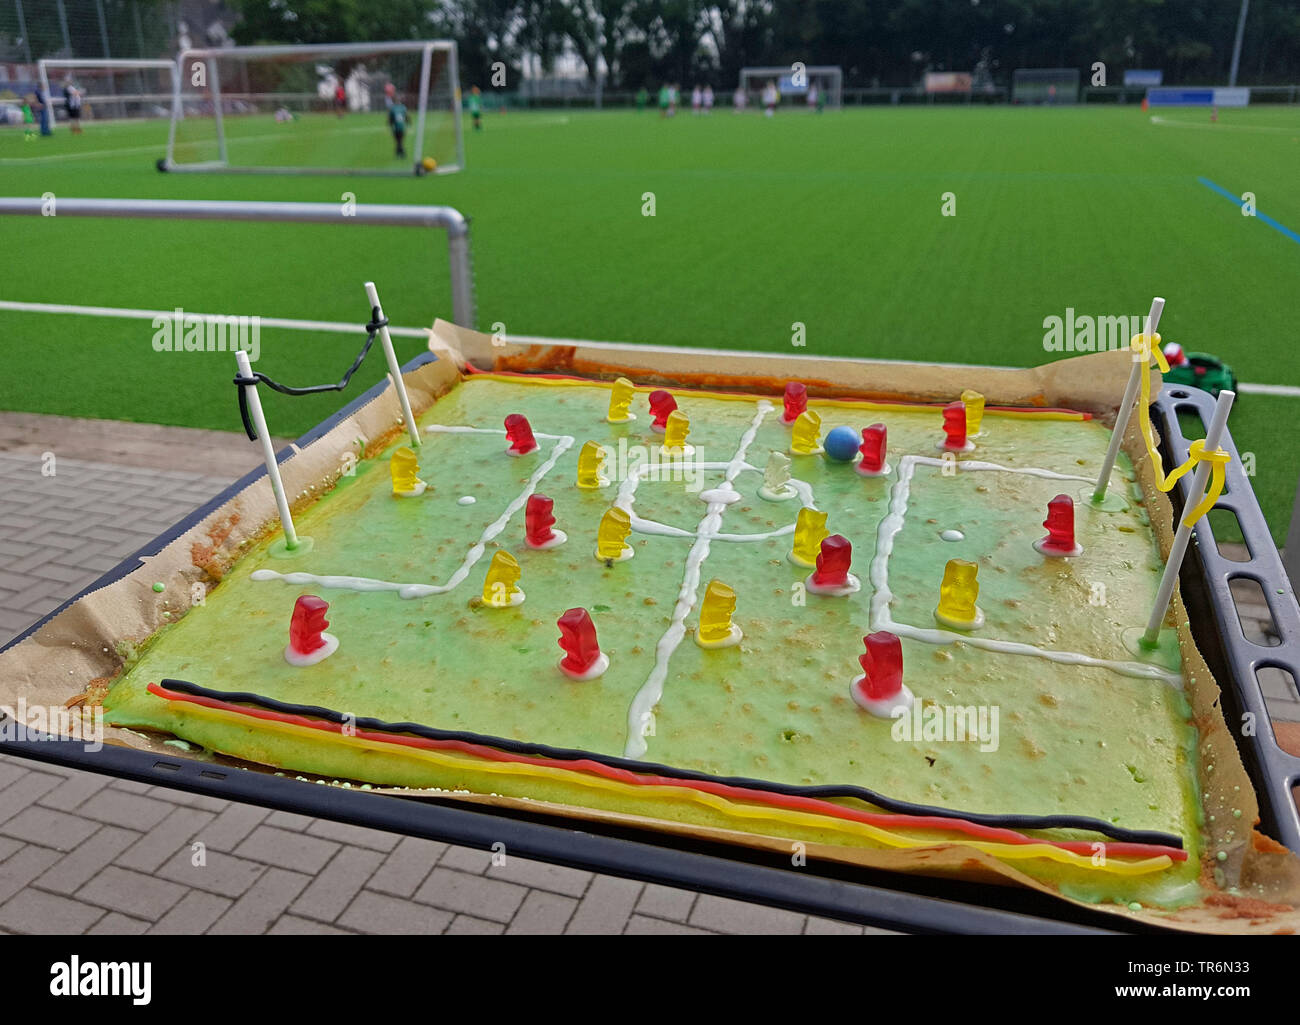 selbstgemachter Fussballkuchen mit Gummibaerchen auf einem Backblech am Rand eines Fussballplatzes | selfmade football cake at the border of a footbal - Stock Image